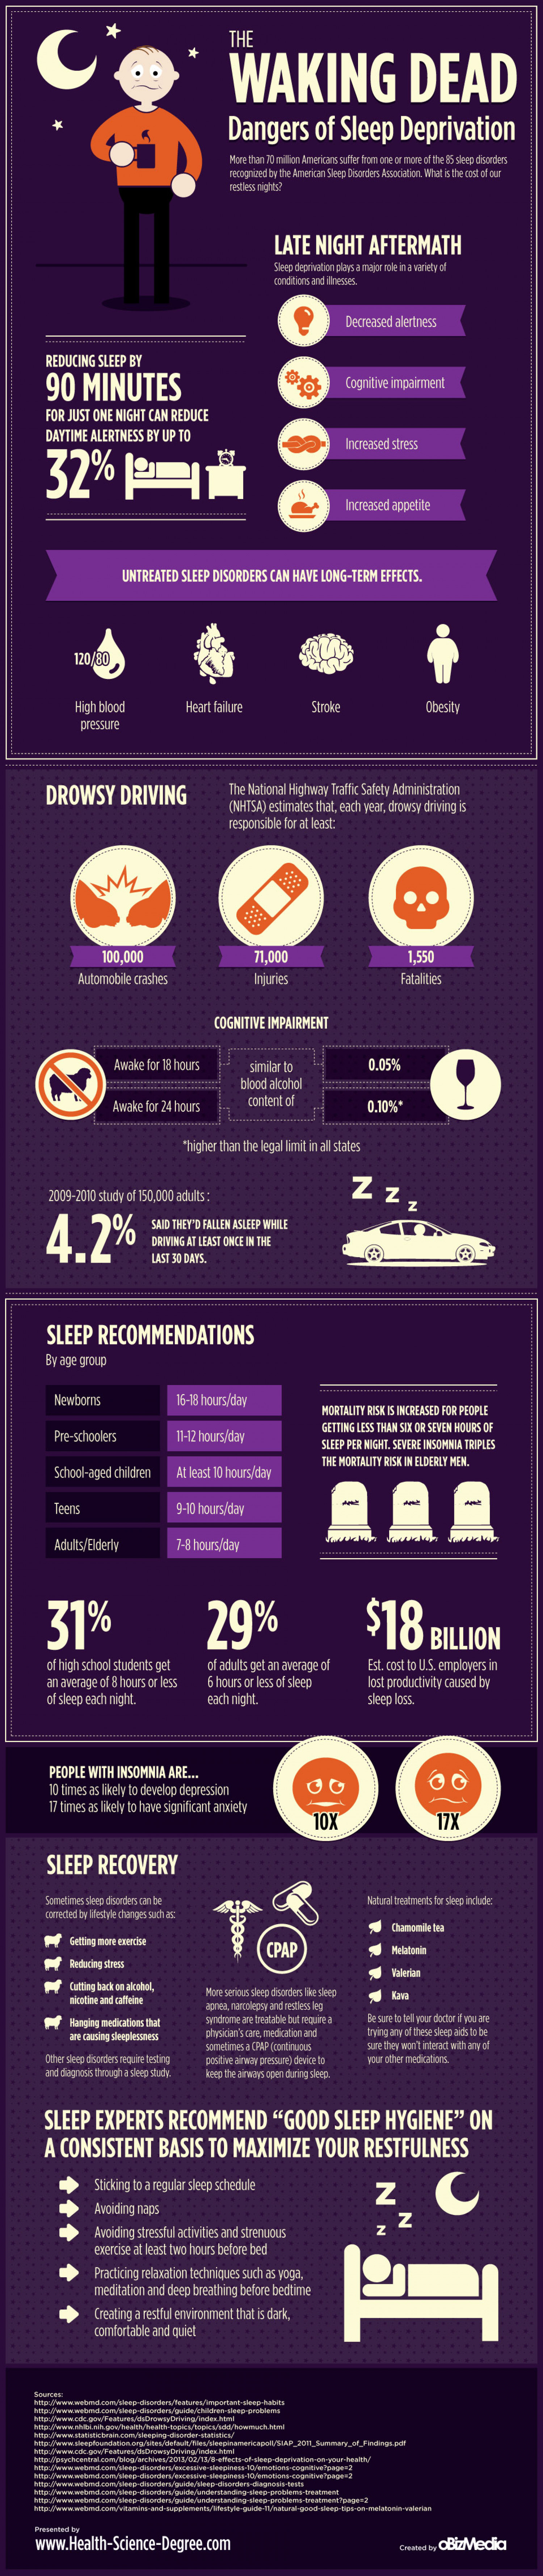 The Waking Dead: Dangers of Sleep Deprivation Infographic